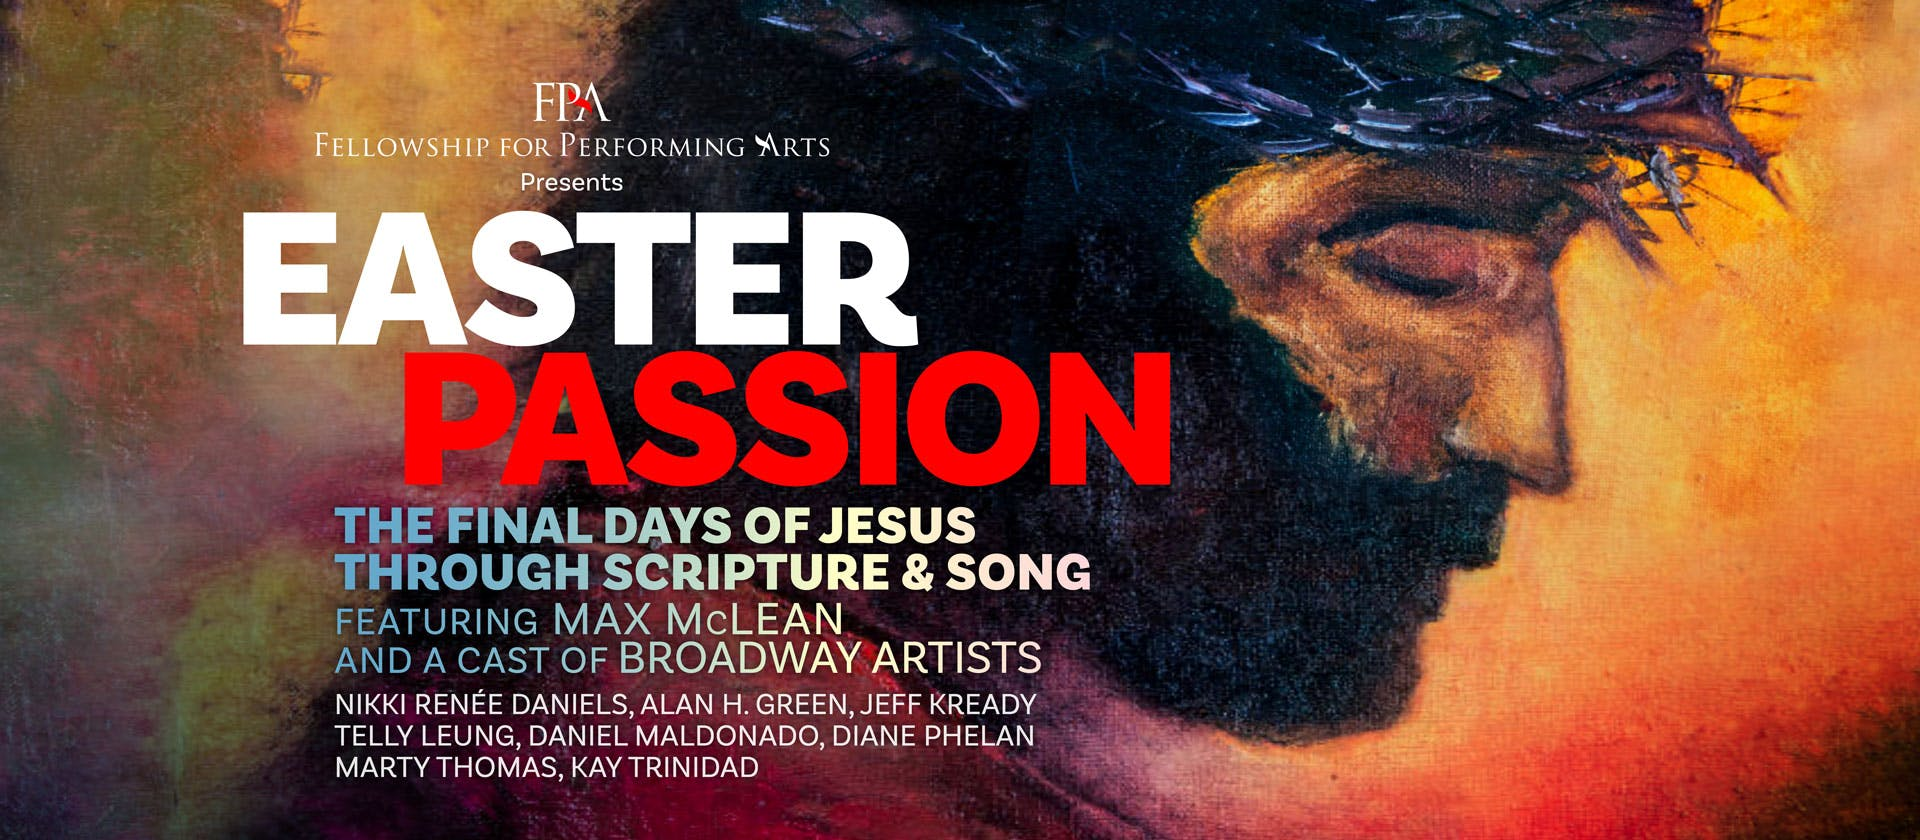 Easter Passion - Fellowship for Performing Arts